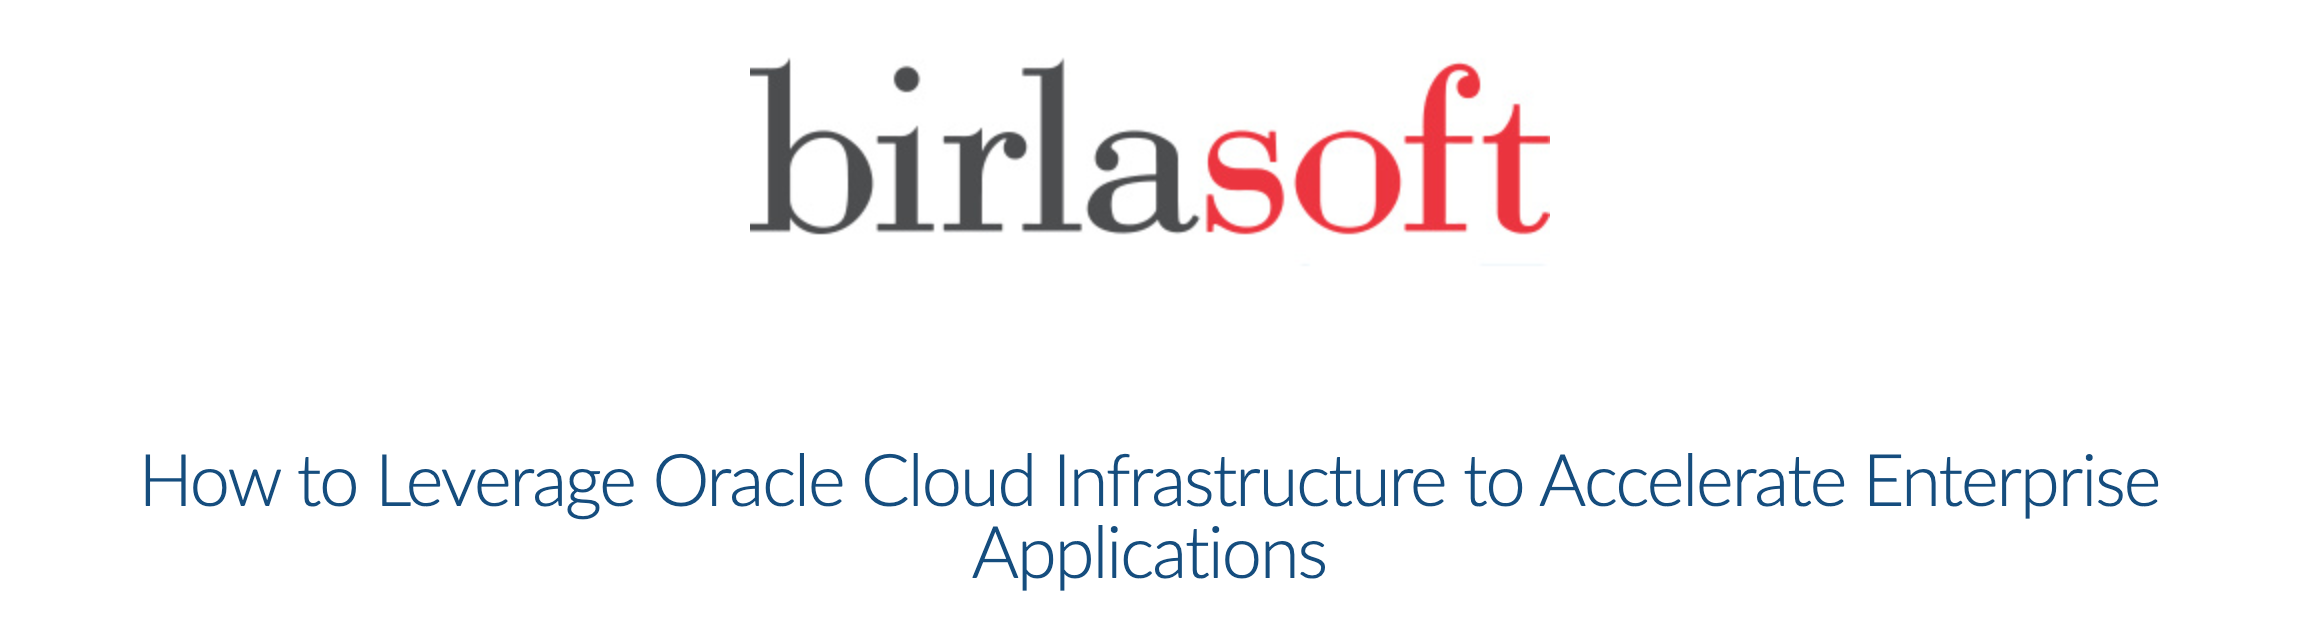 Birlasoft Webinar: How to Leverage Oracle Cloud Infrastructure to Accelerate Enterprise Applications